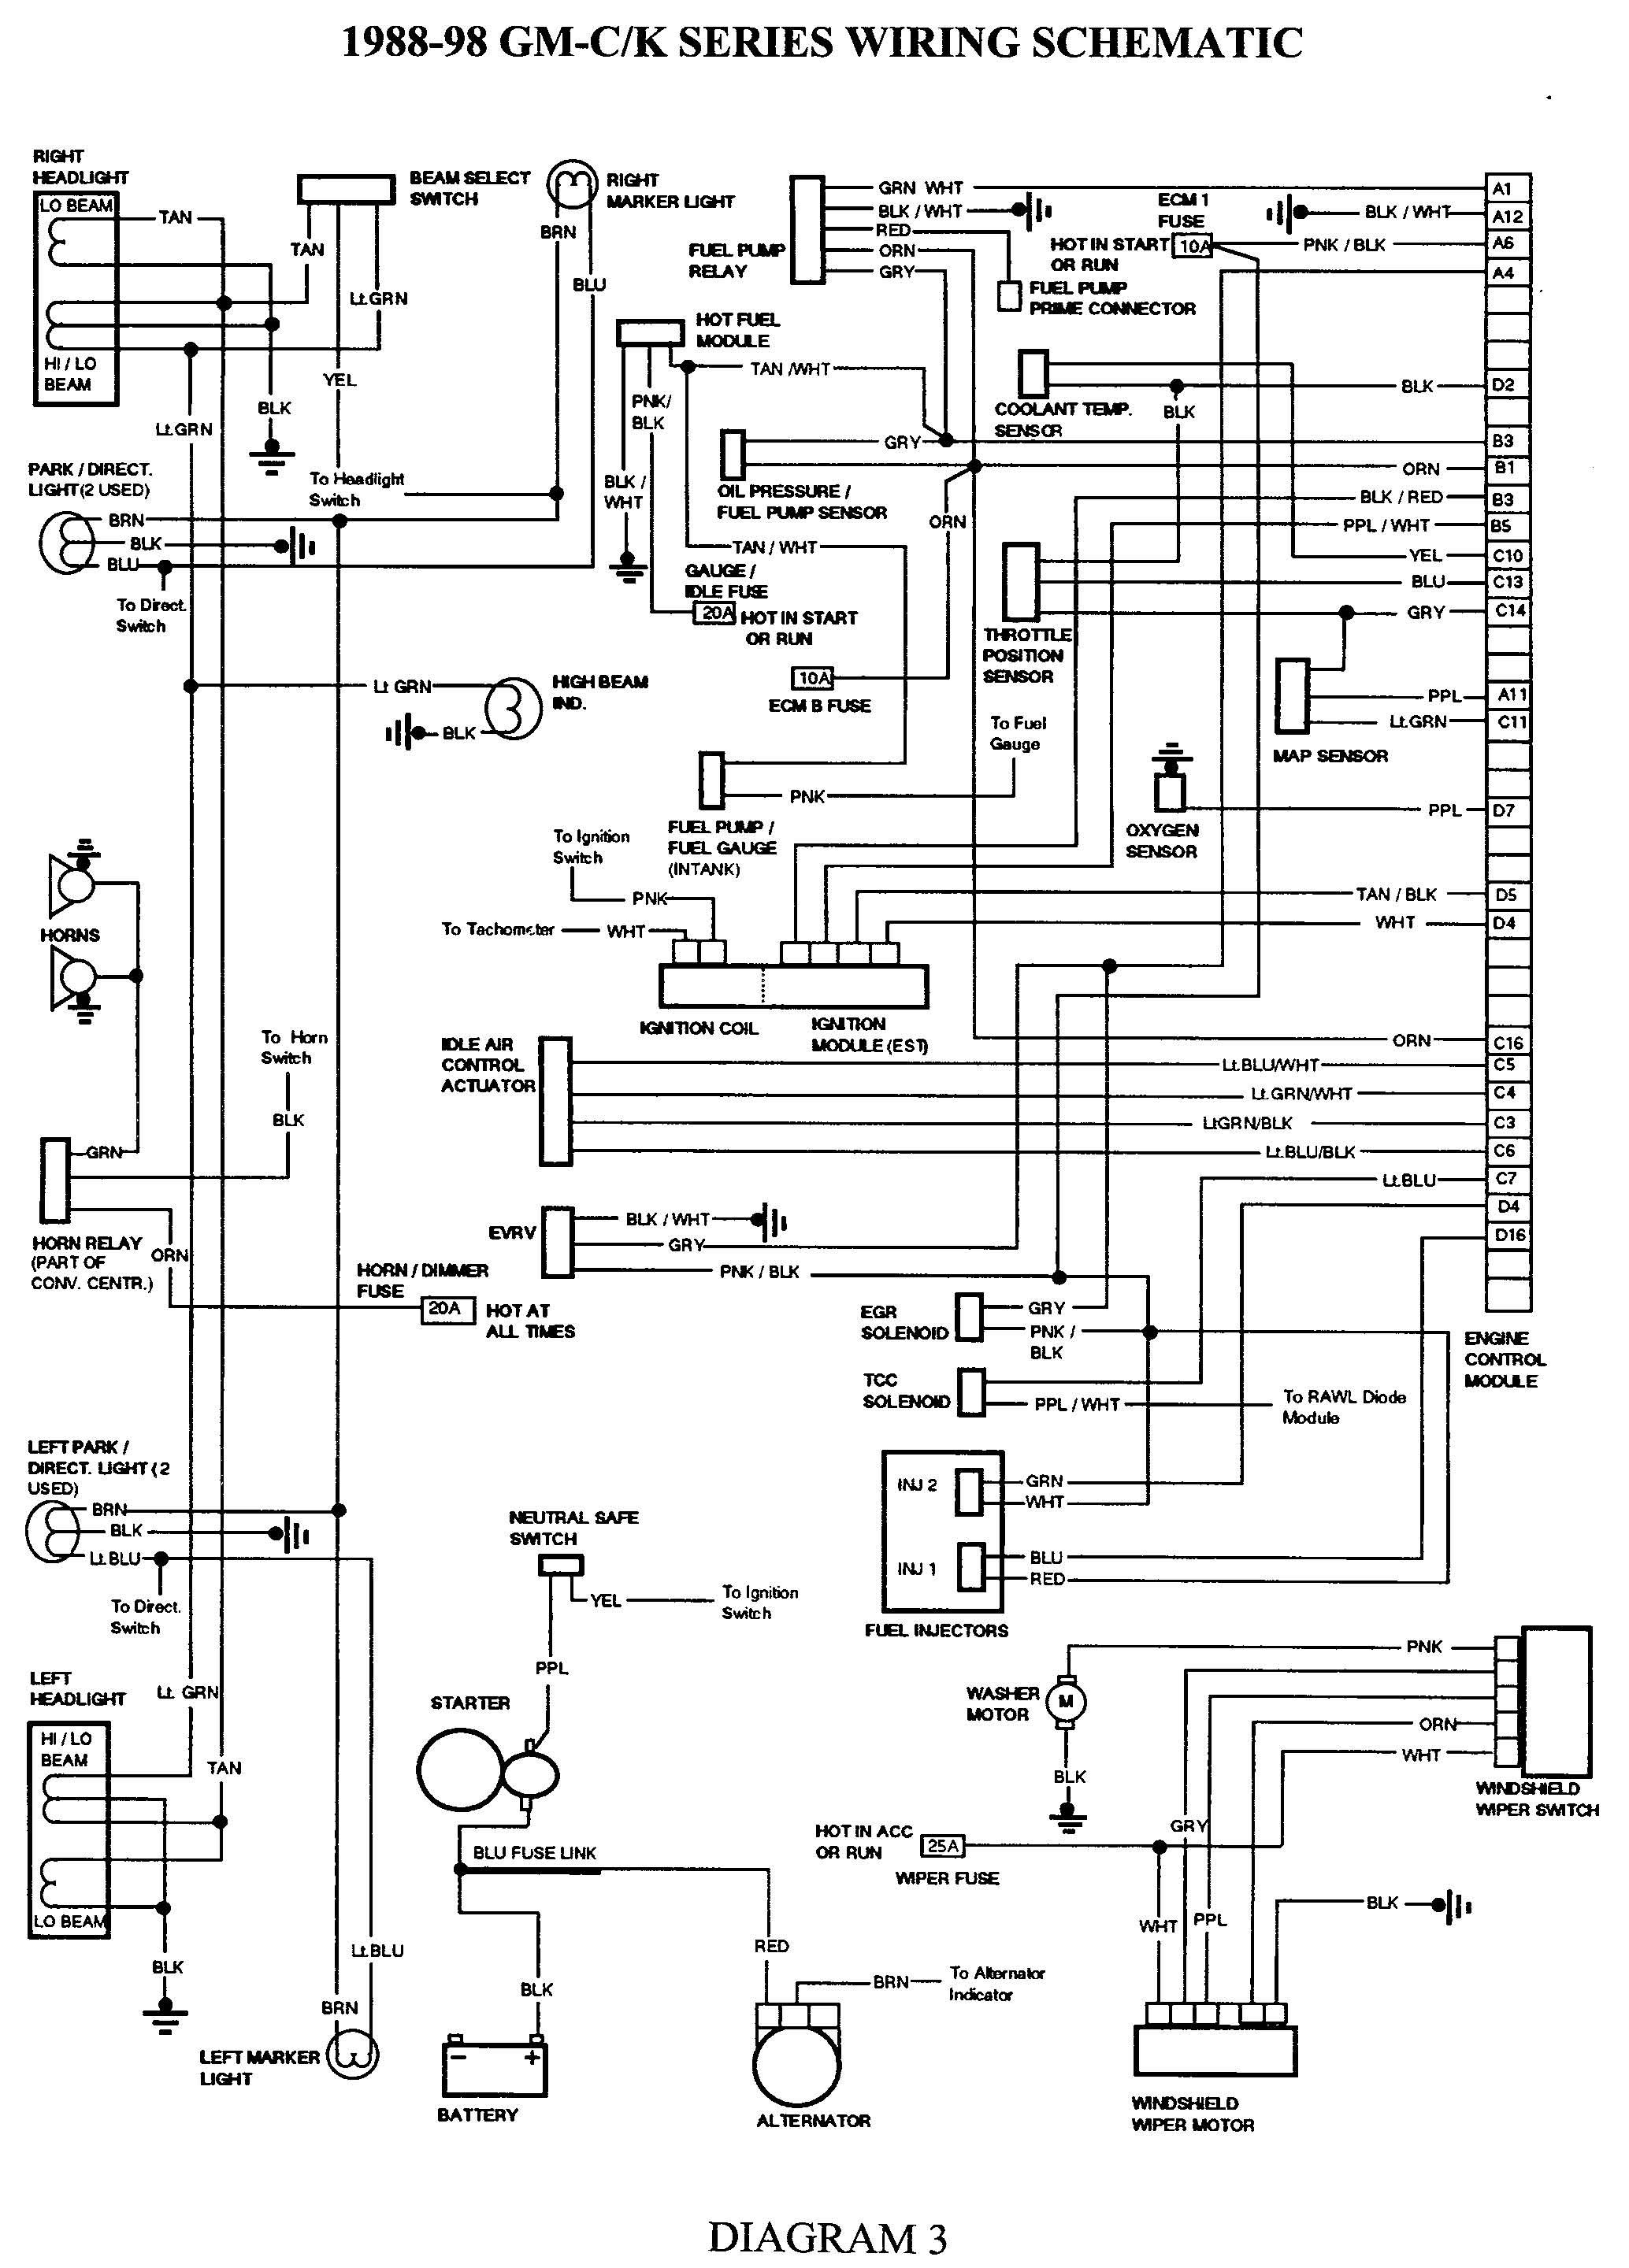 1995 yukon wiring diagram explained wiring diagrams rh sbsun co 2008 yukon radio wiring diagram 2008 yukon radio wiring diagram